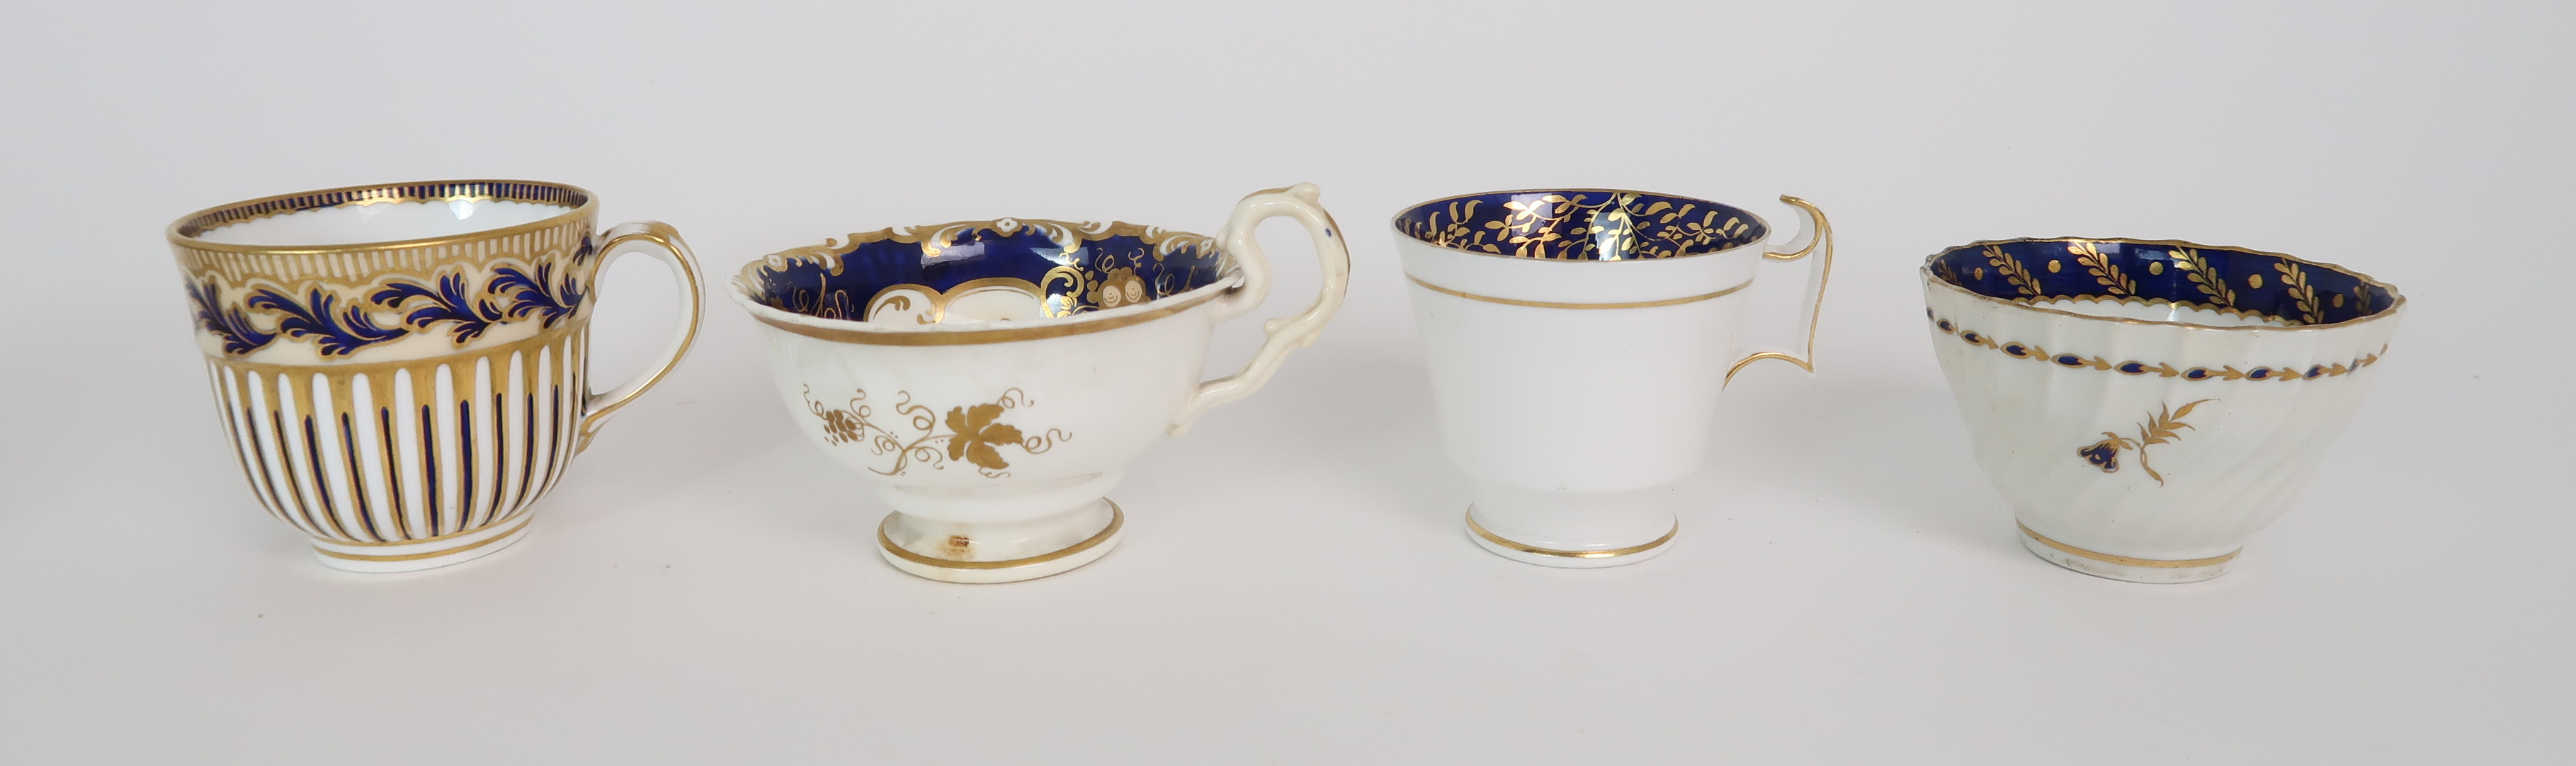 A COLLECTION OF 19TH CENTURY ENGLISH BLUE AND GILT DECORATED TEA AND COFFEE WARES including a - Image 11 of 23